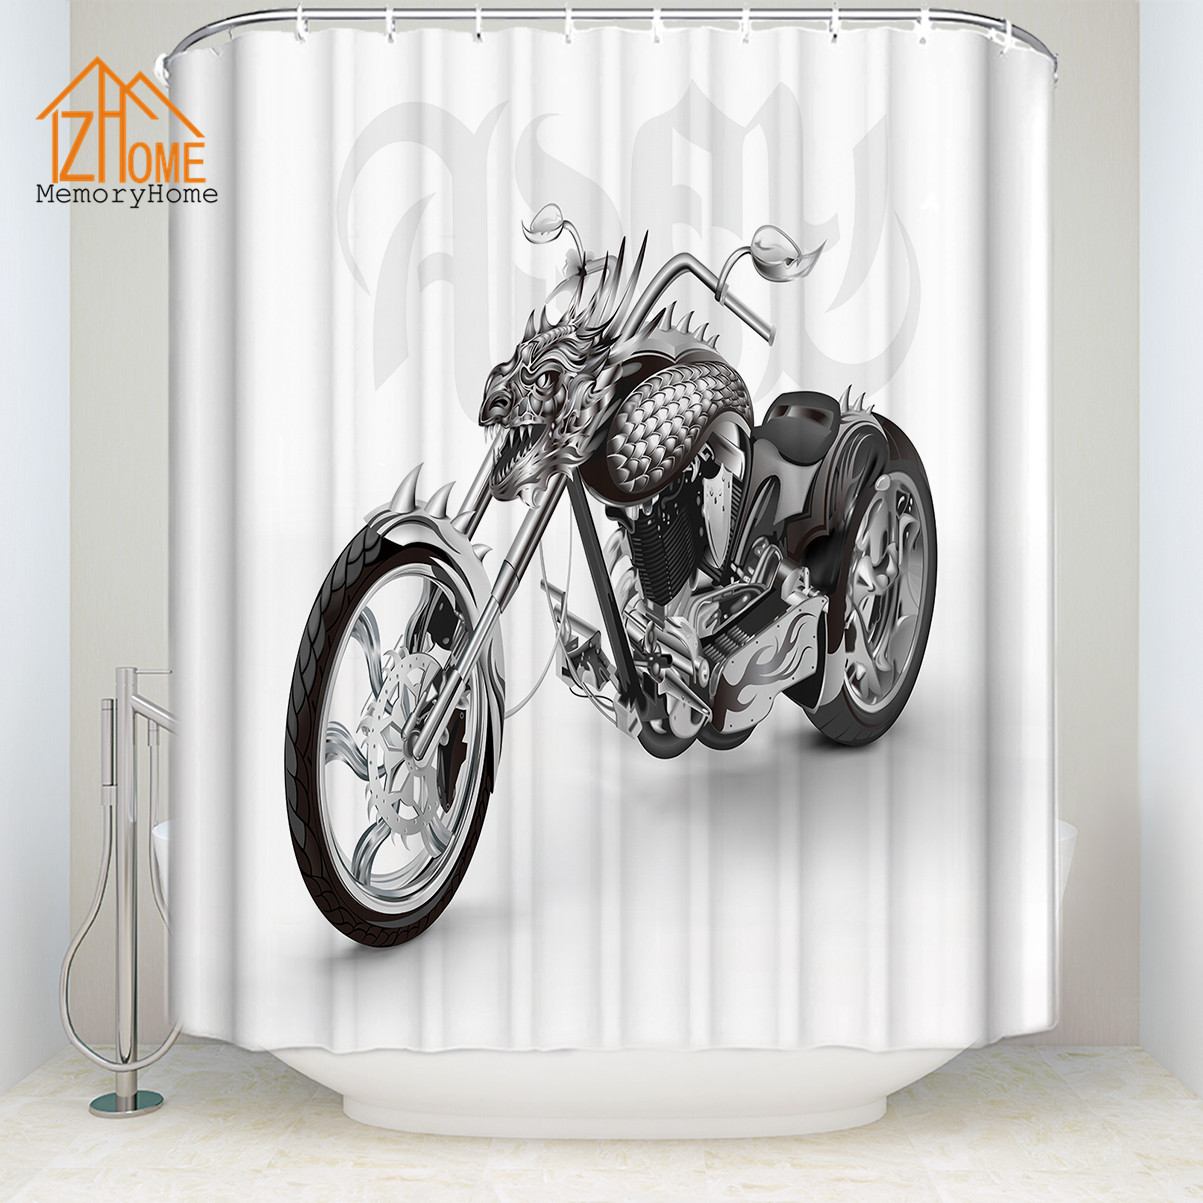 Memory Home New Arrival White Polyester Cool Motorcycle Waterproof ...